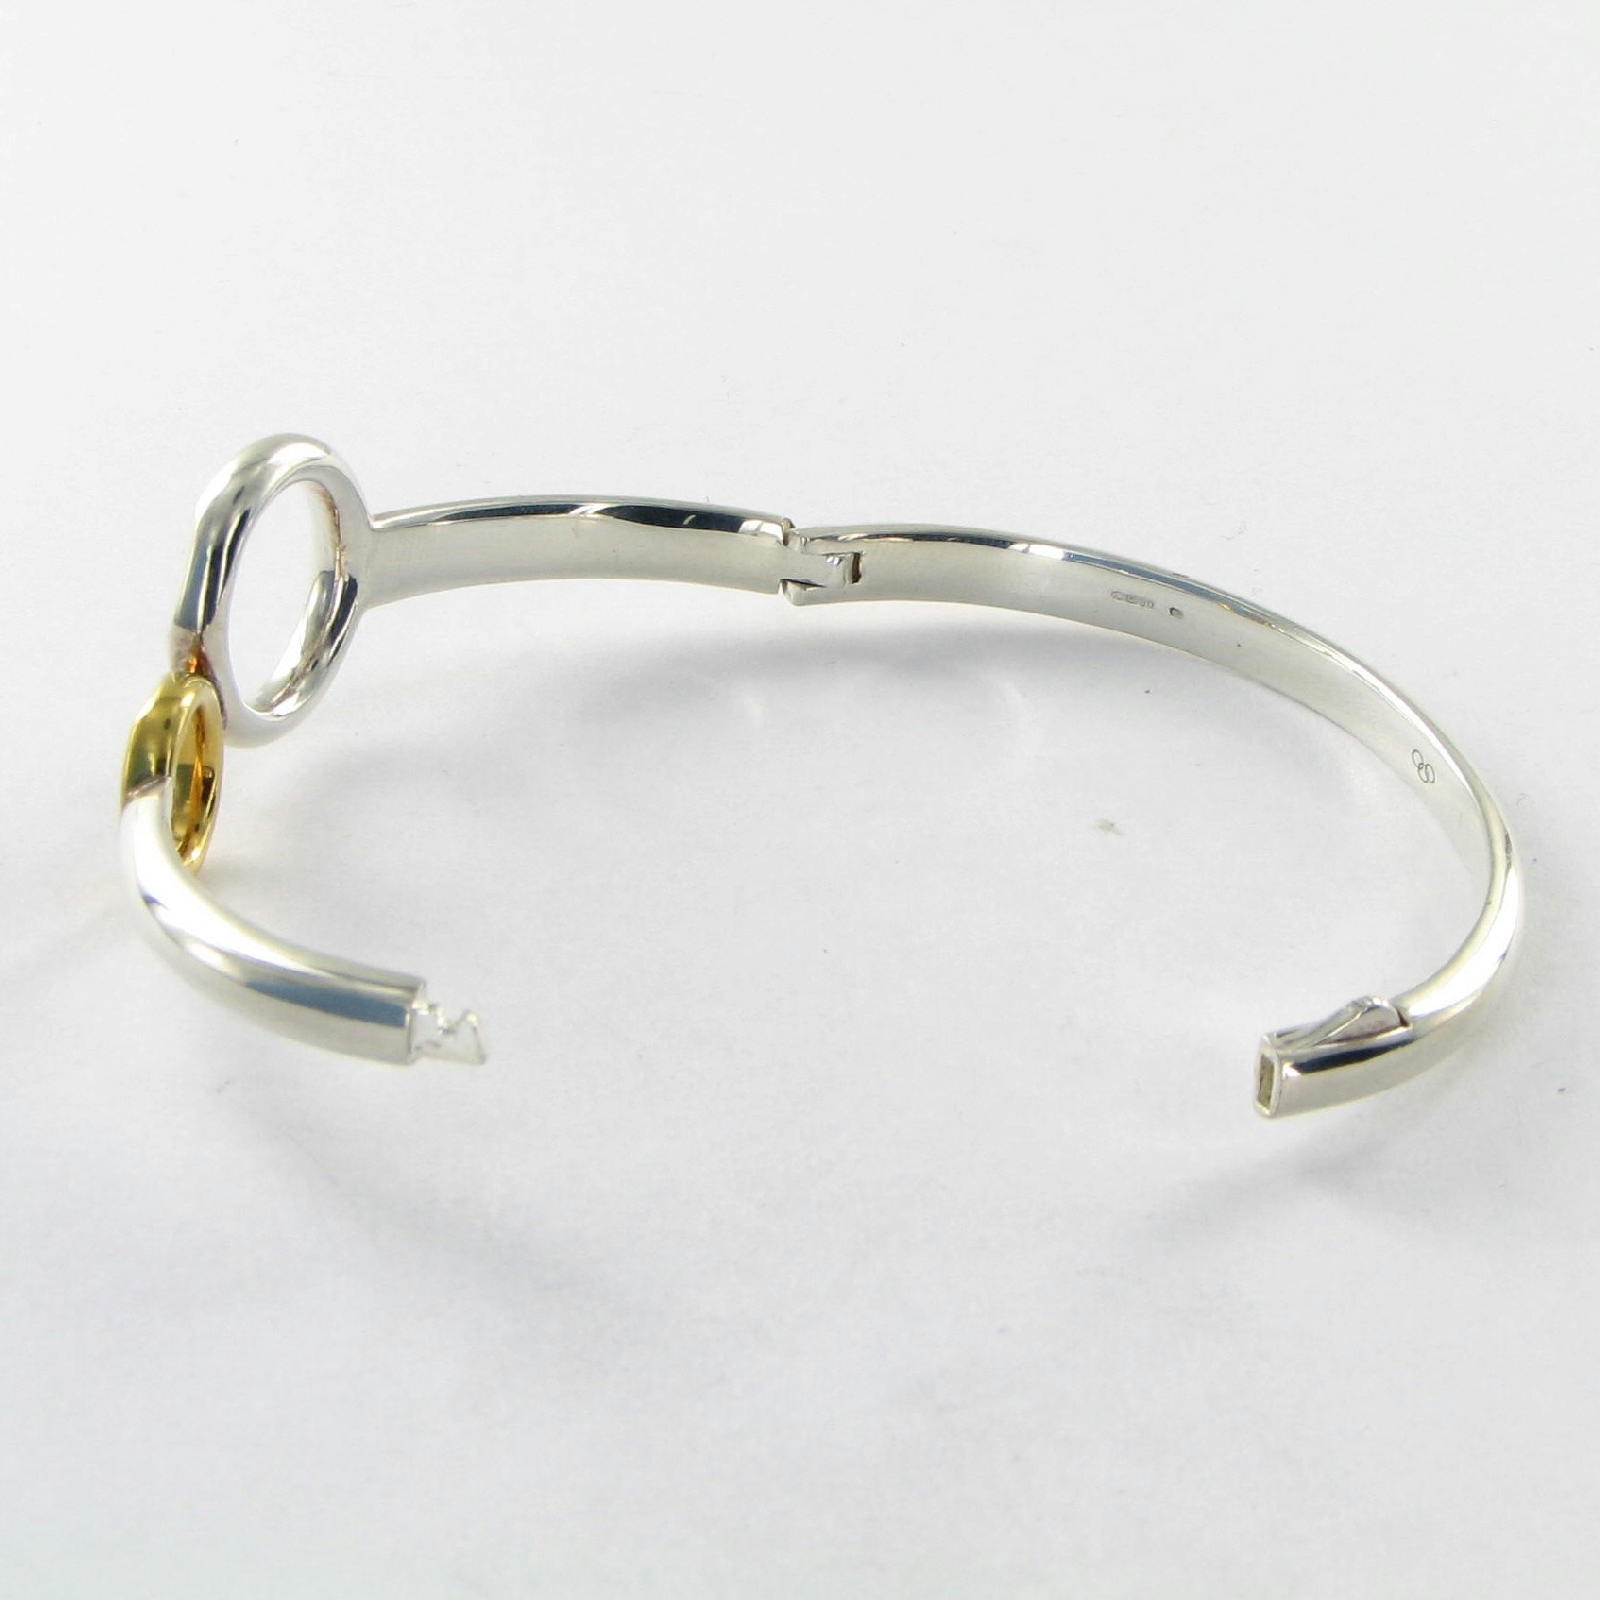 Links of London Duo Ring Bracelet 5012.0356 18k Yellow Gold Sterling New $850